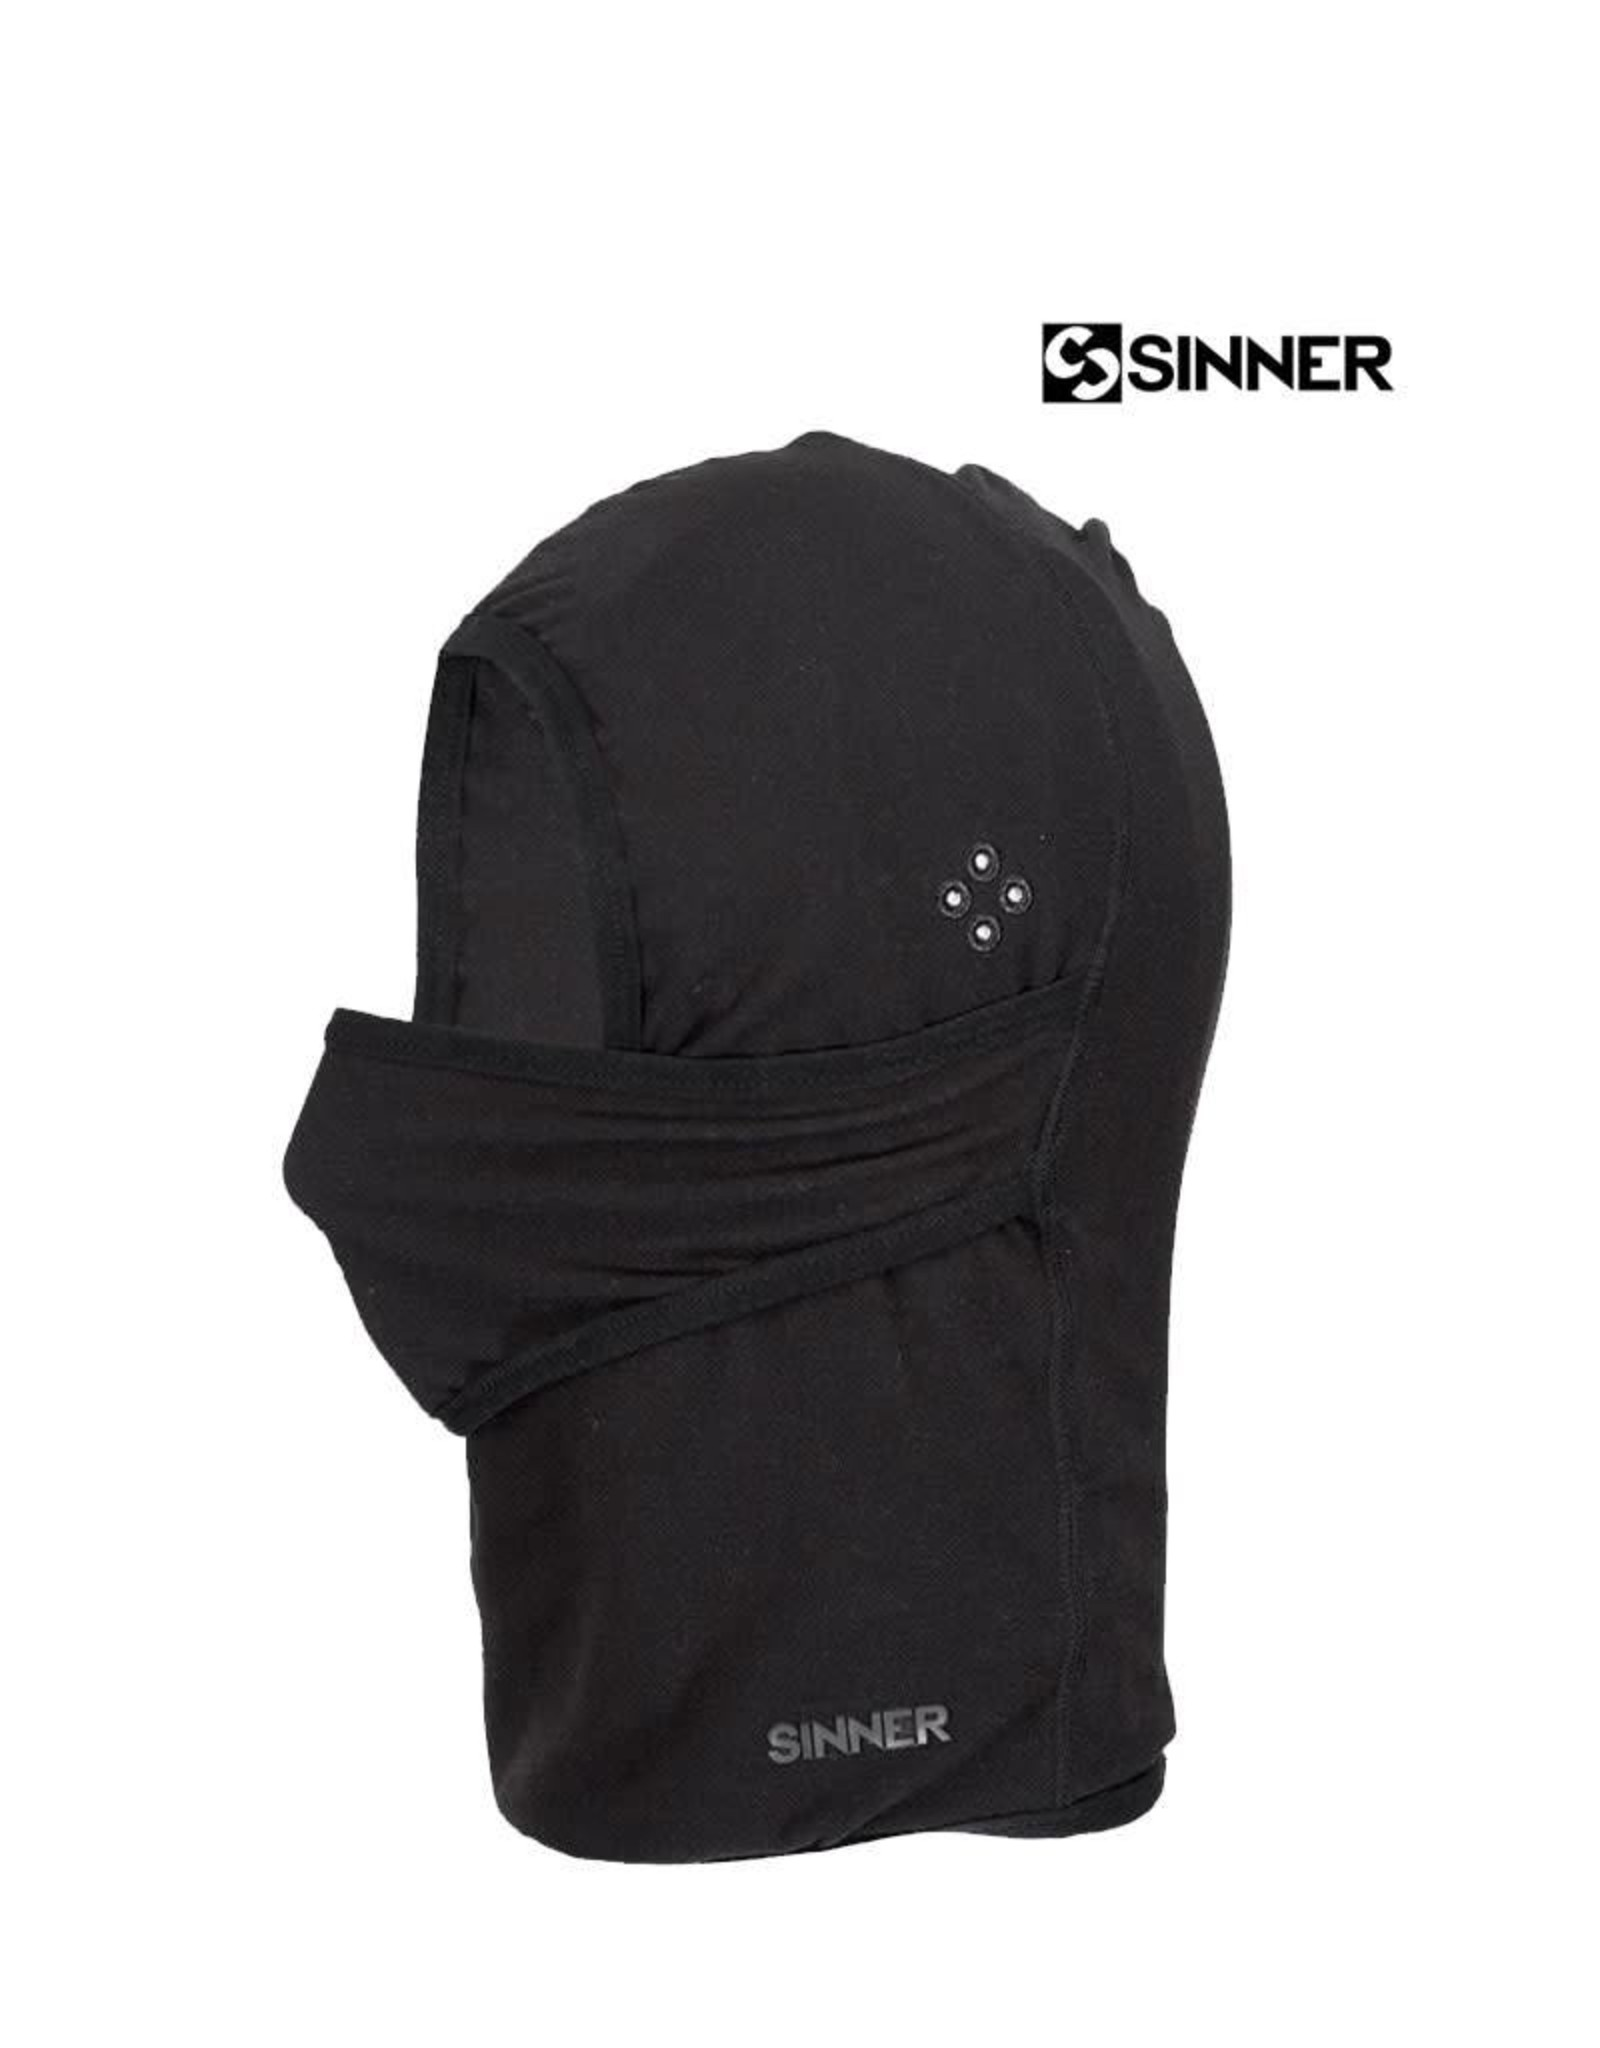 SINNER FORTRESS Fleece Black Uni (Balaclava/Facemask)